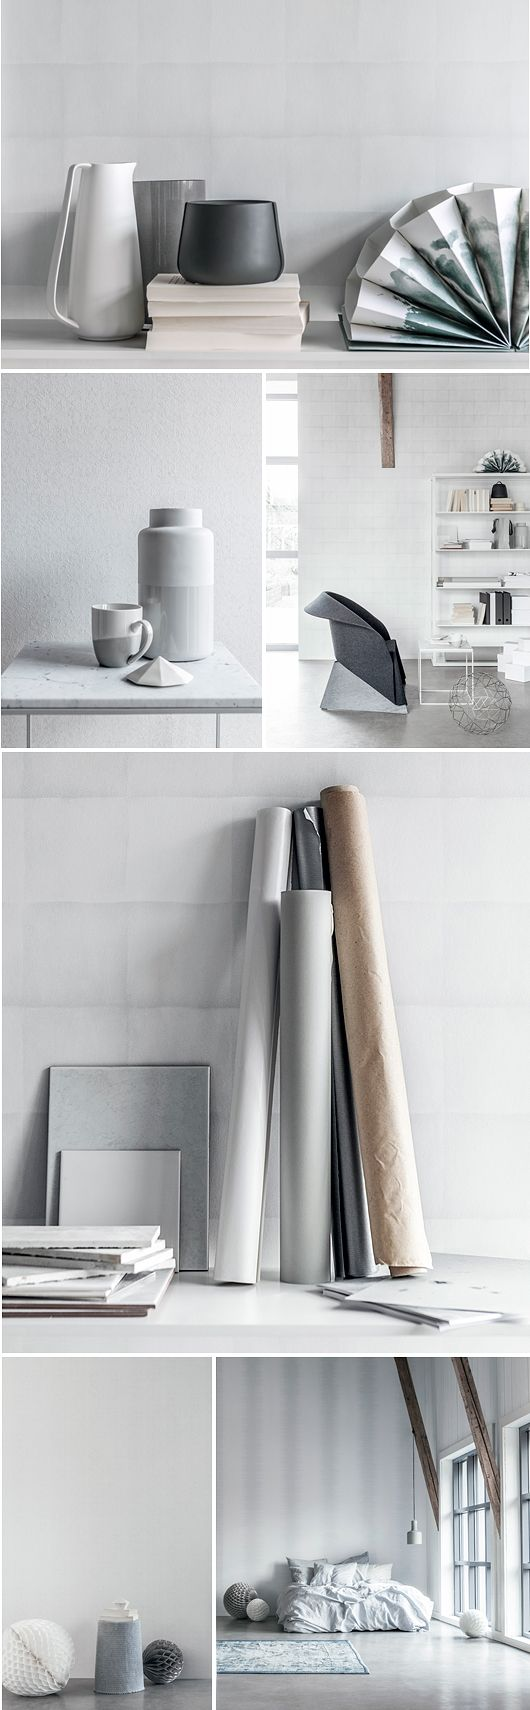 Trendenser.se - Eco Boråstapeter press release on its new collection Eco…